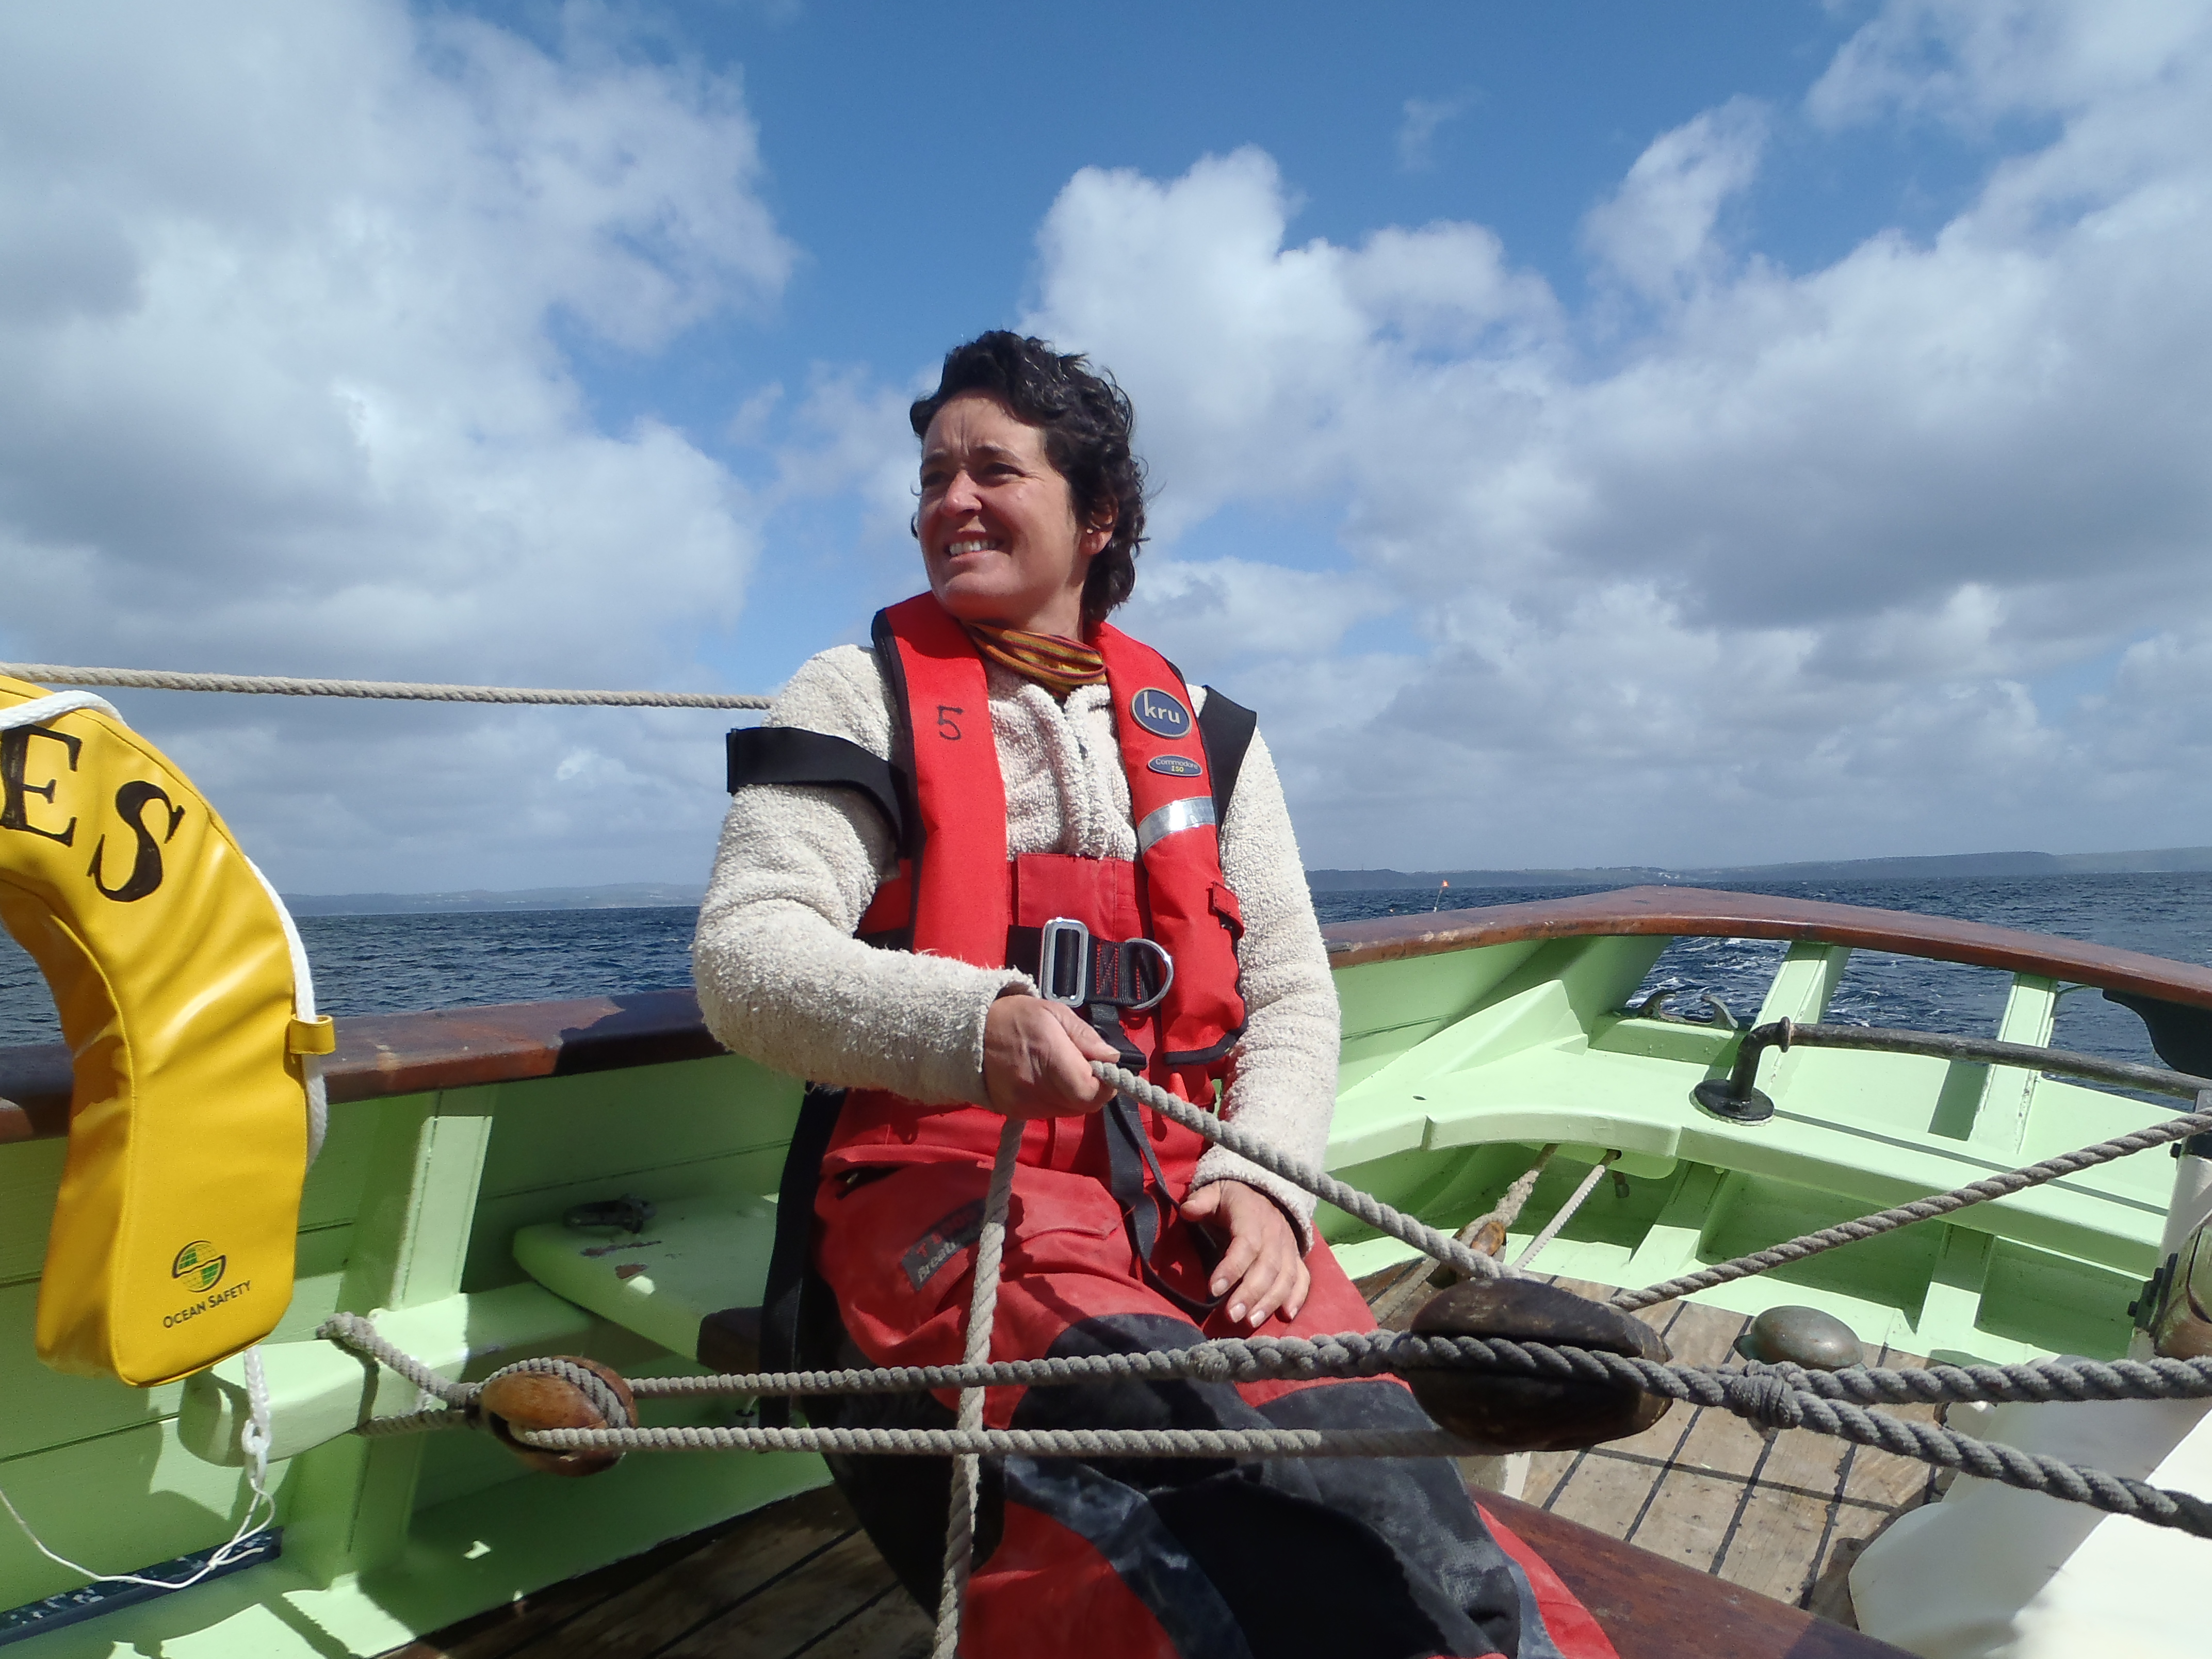 Feeling seasick? take the helm and concentrate on something else